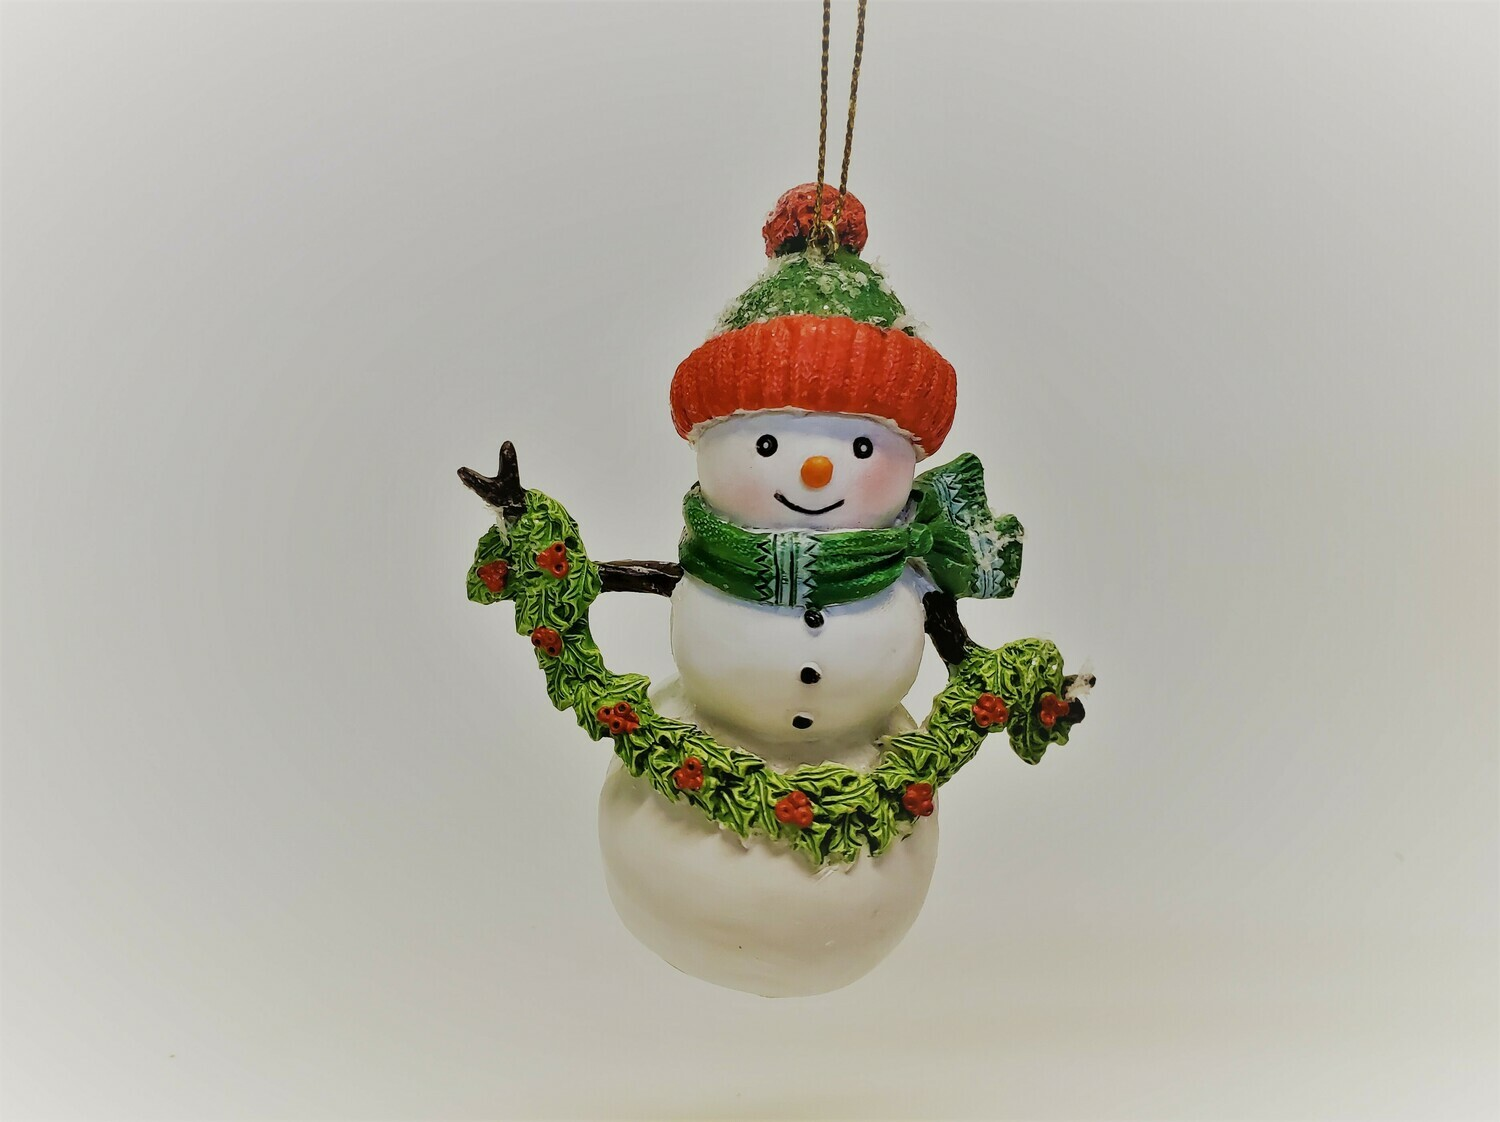 Green Bundled up Snowman